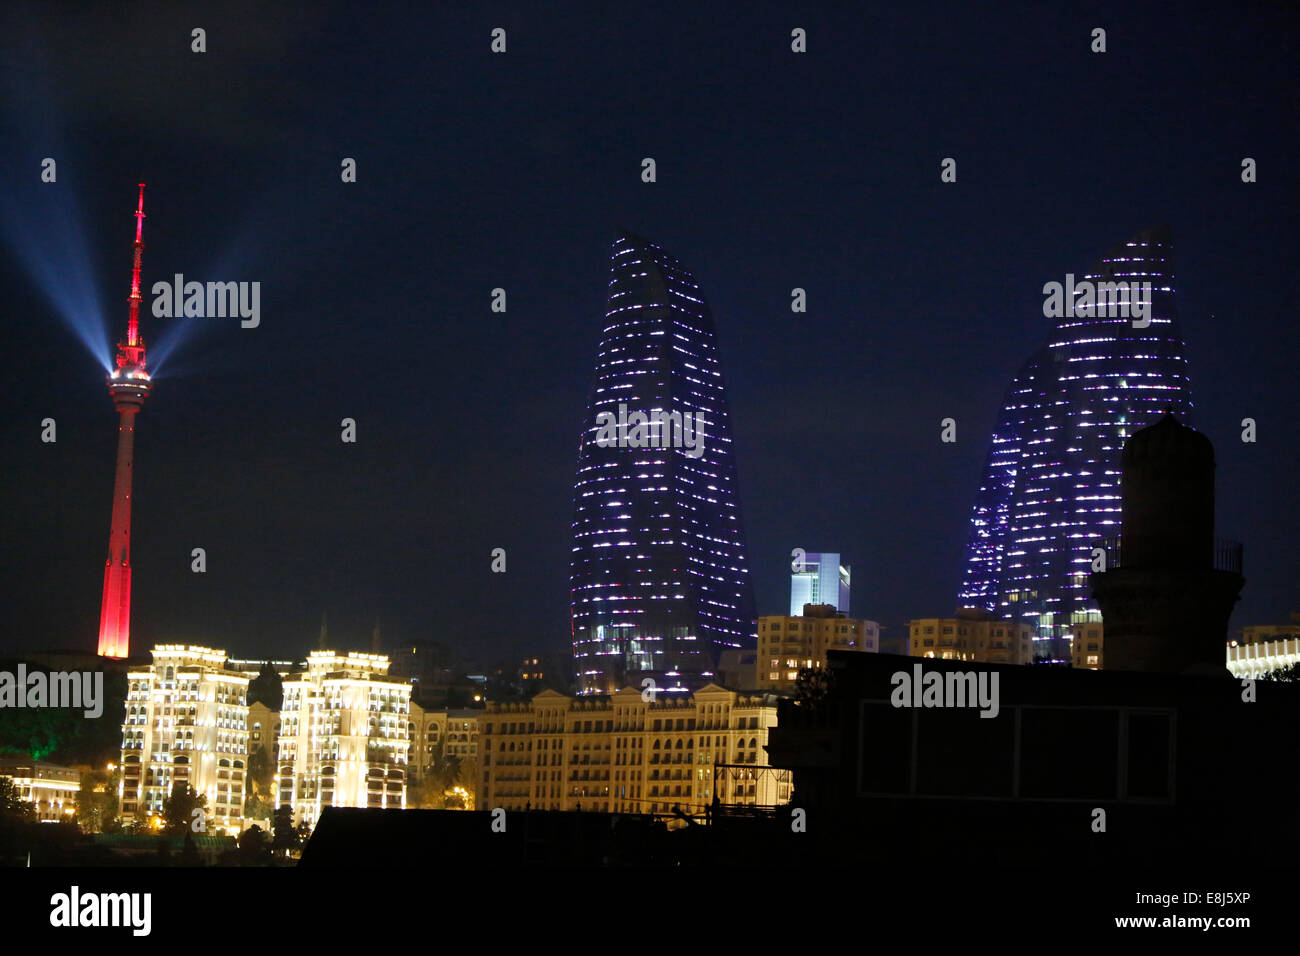 Flame Towers, a residential complex with a roof height of 190 m (620 ft) in Baku. The facades of the three Flame - Stock Image